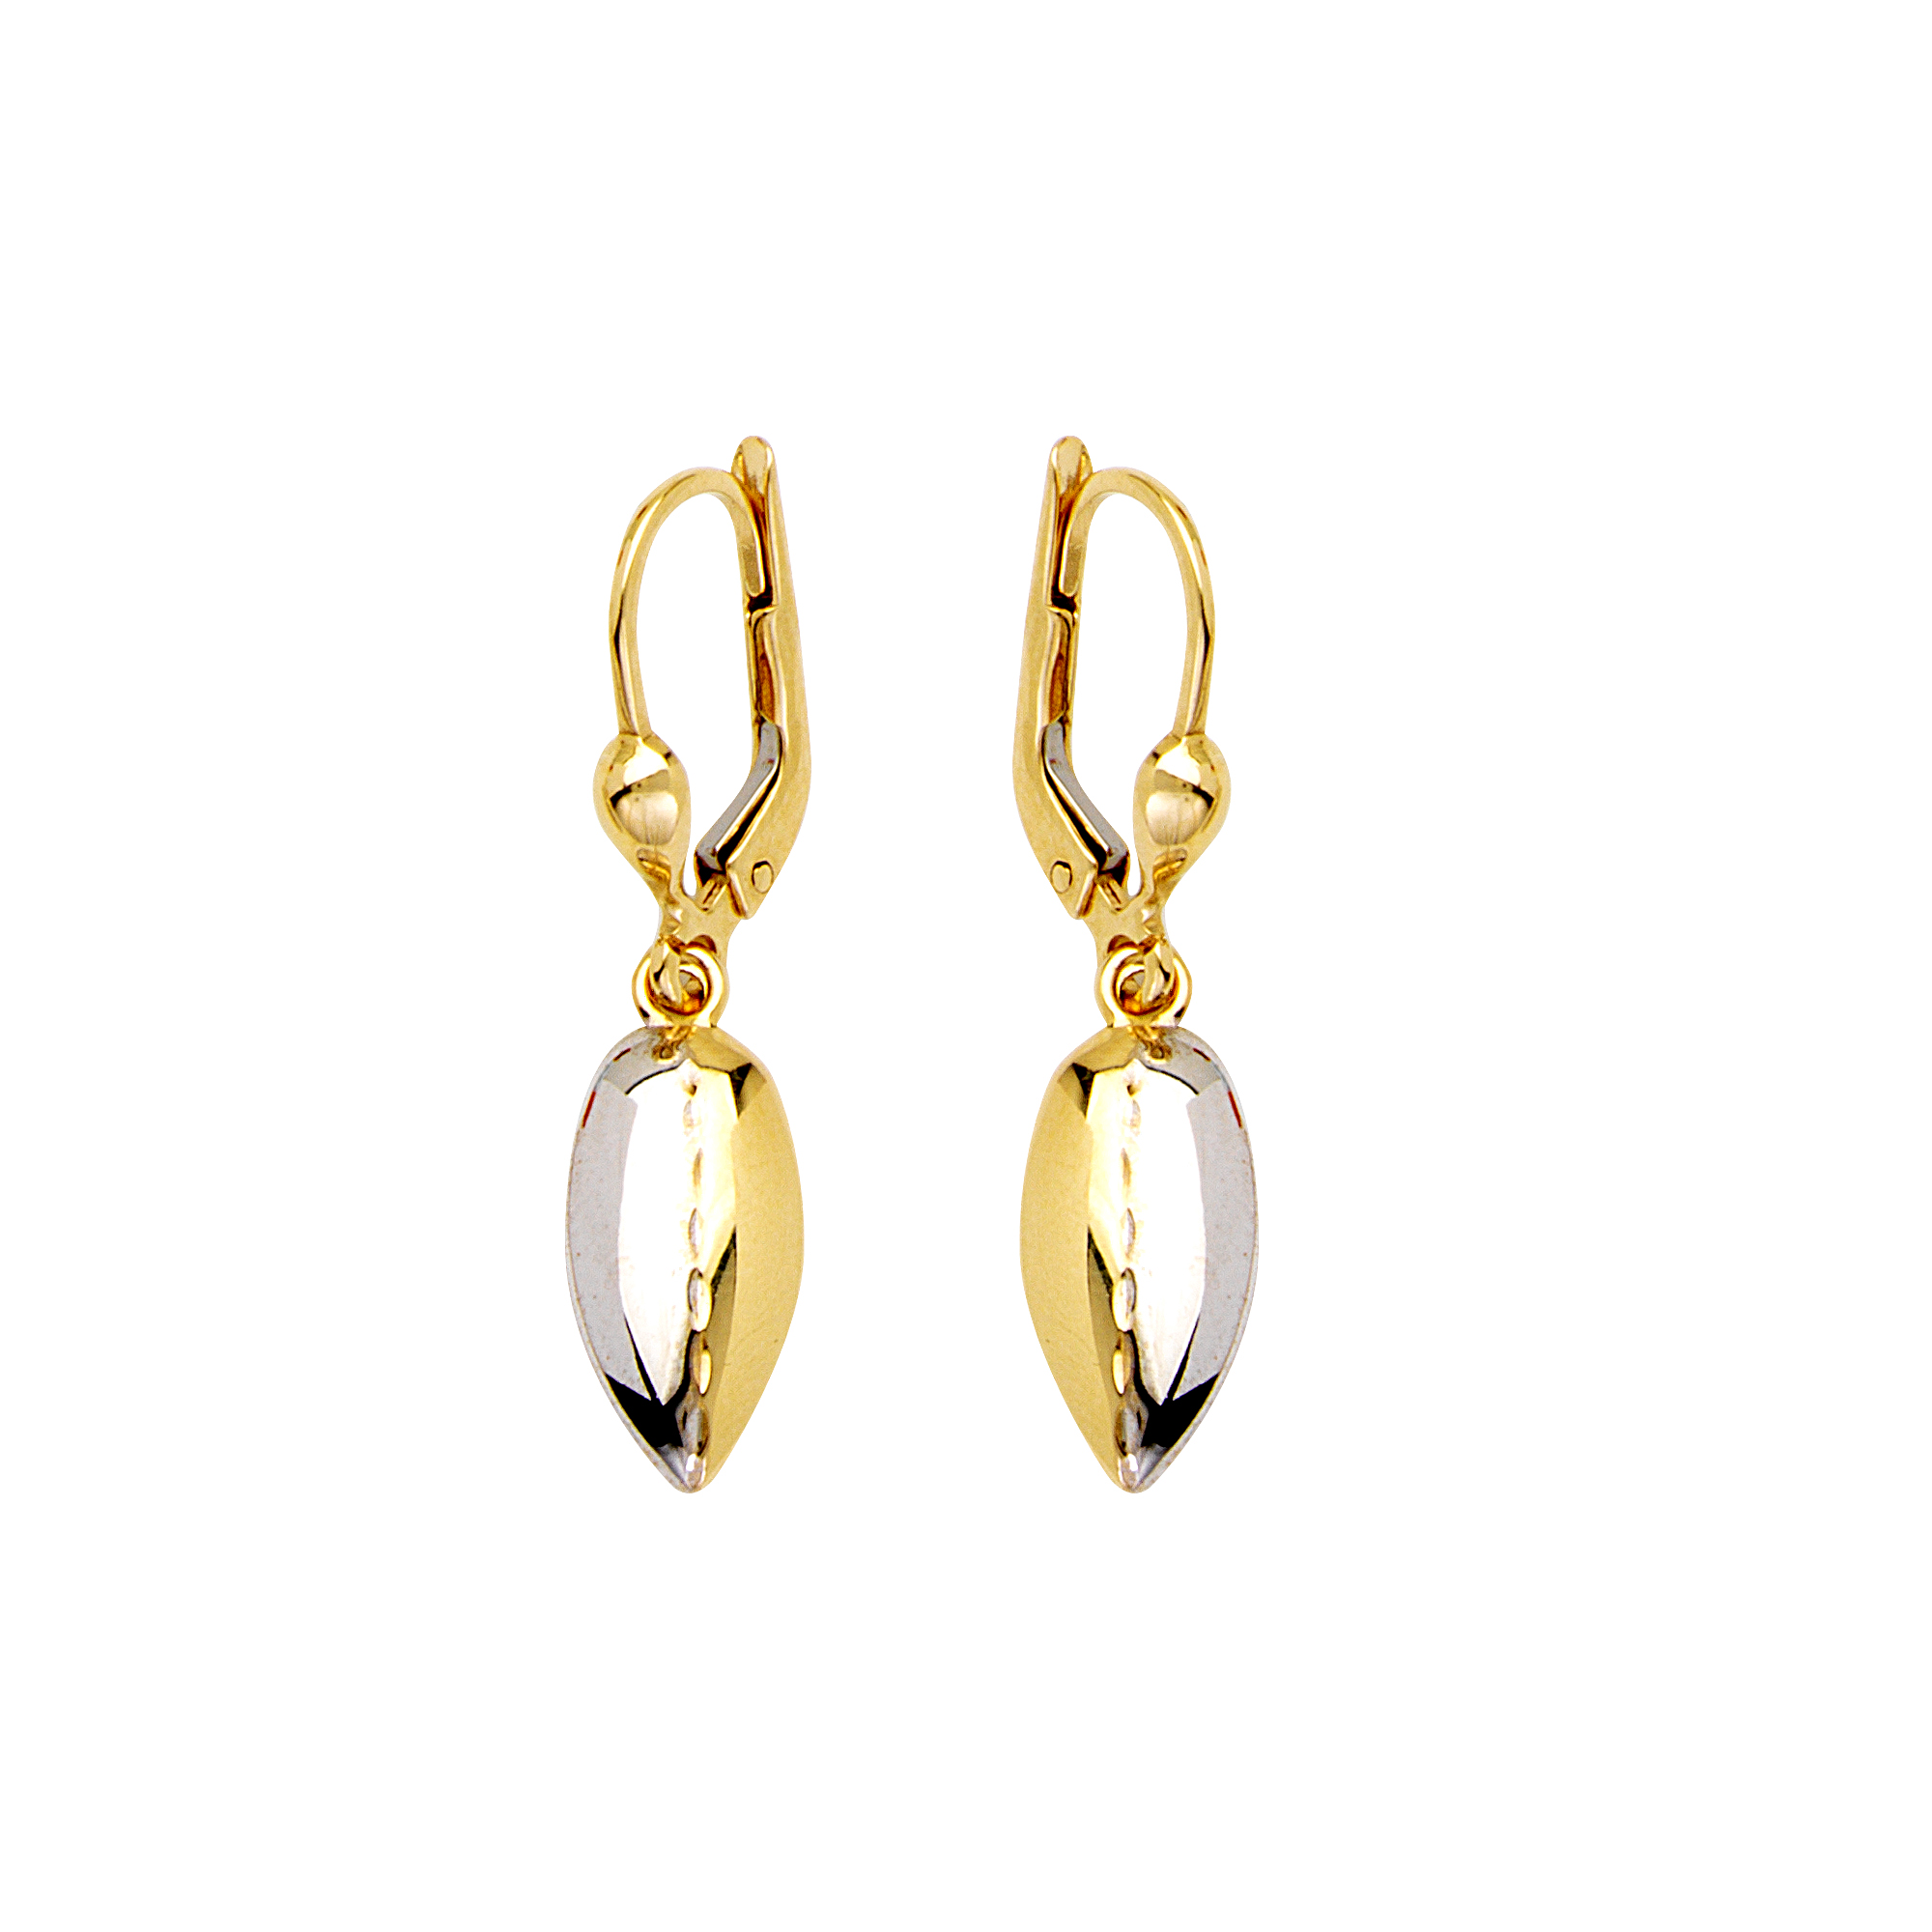 Dangle Earrings, 14Kt Gold Earrings